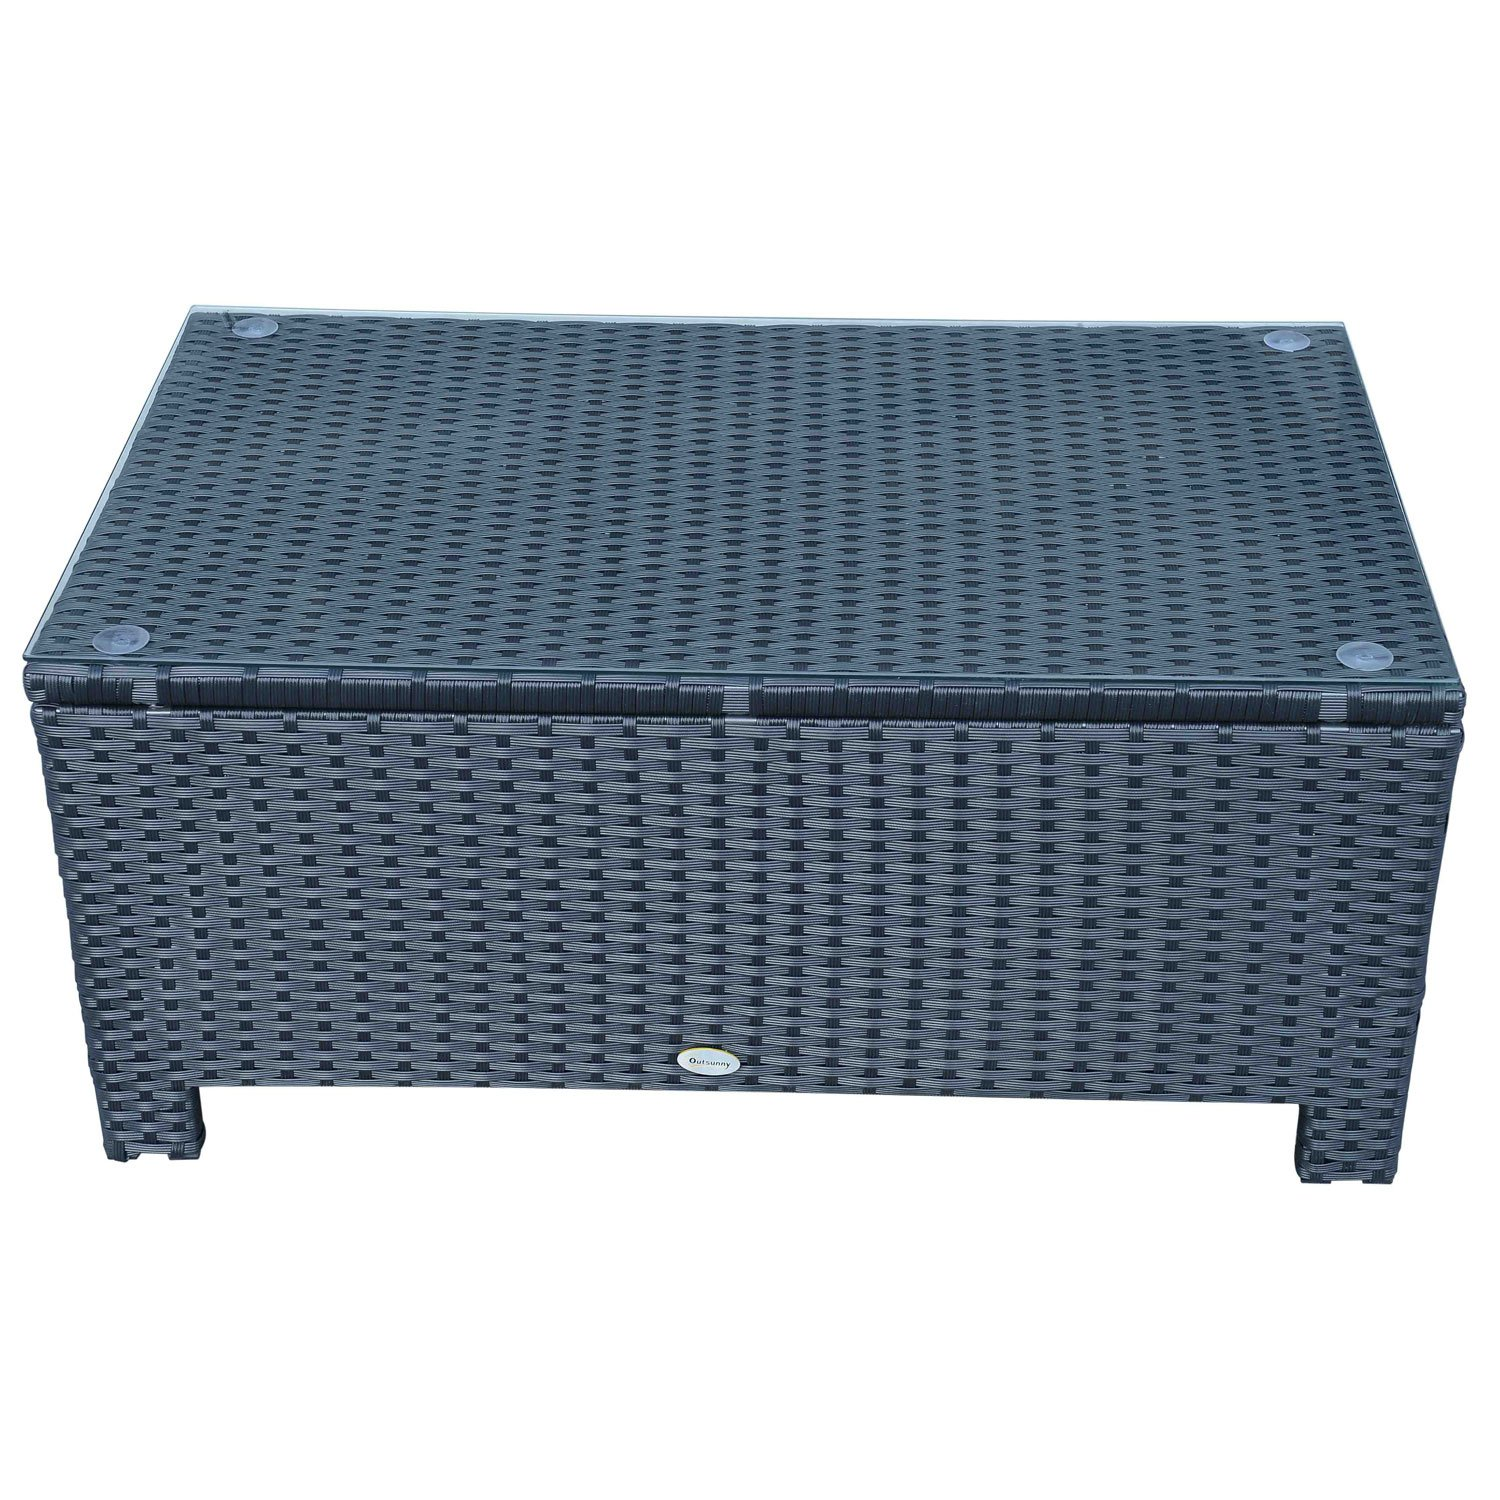 Outsunny Rattan Garden Furniture Coffee Table Patio Iron Frame